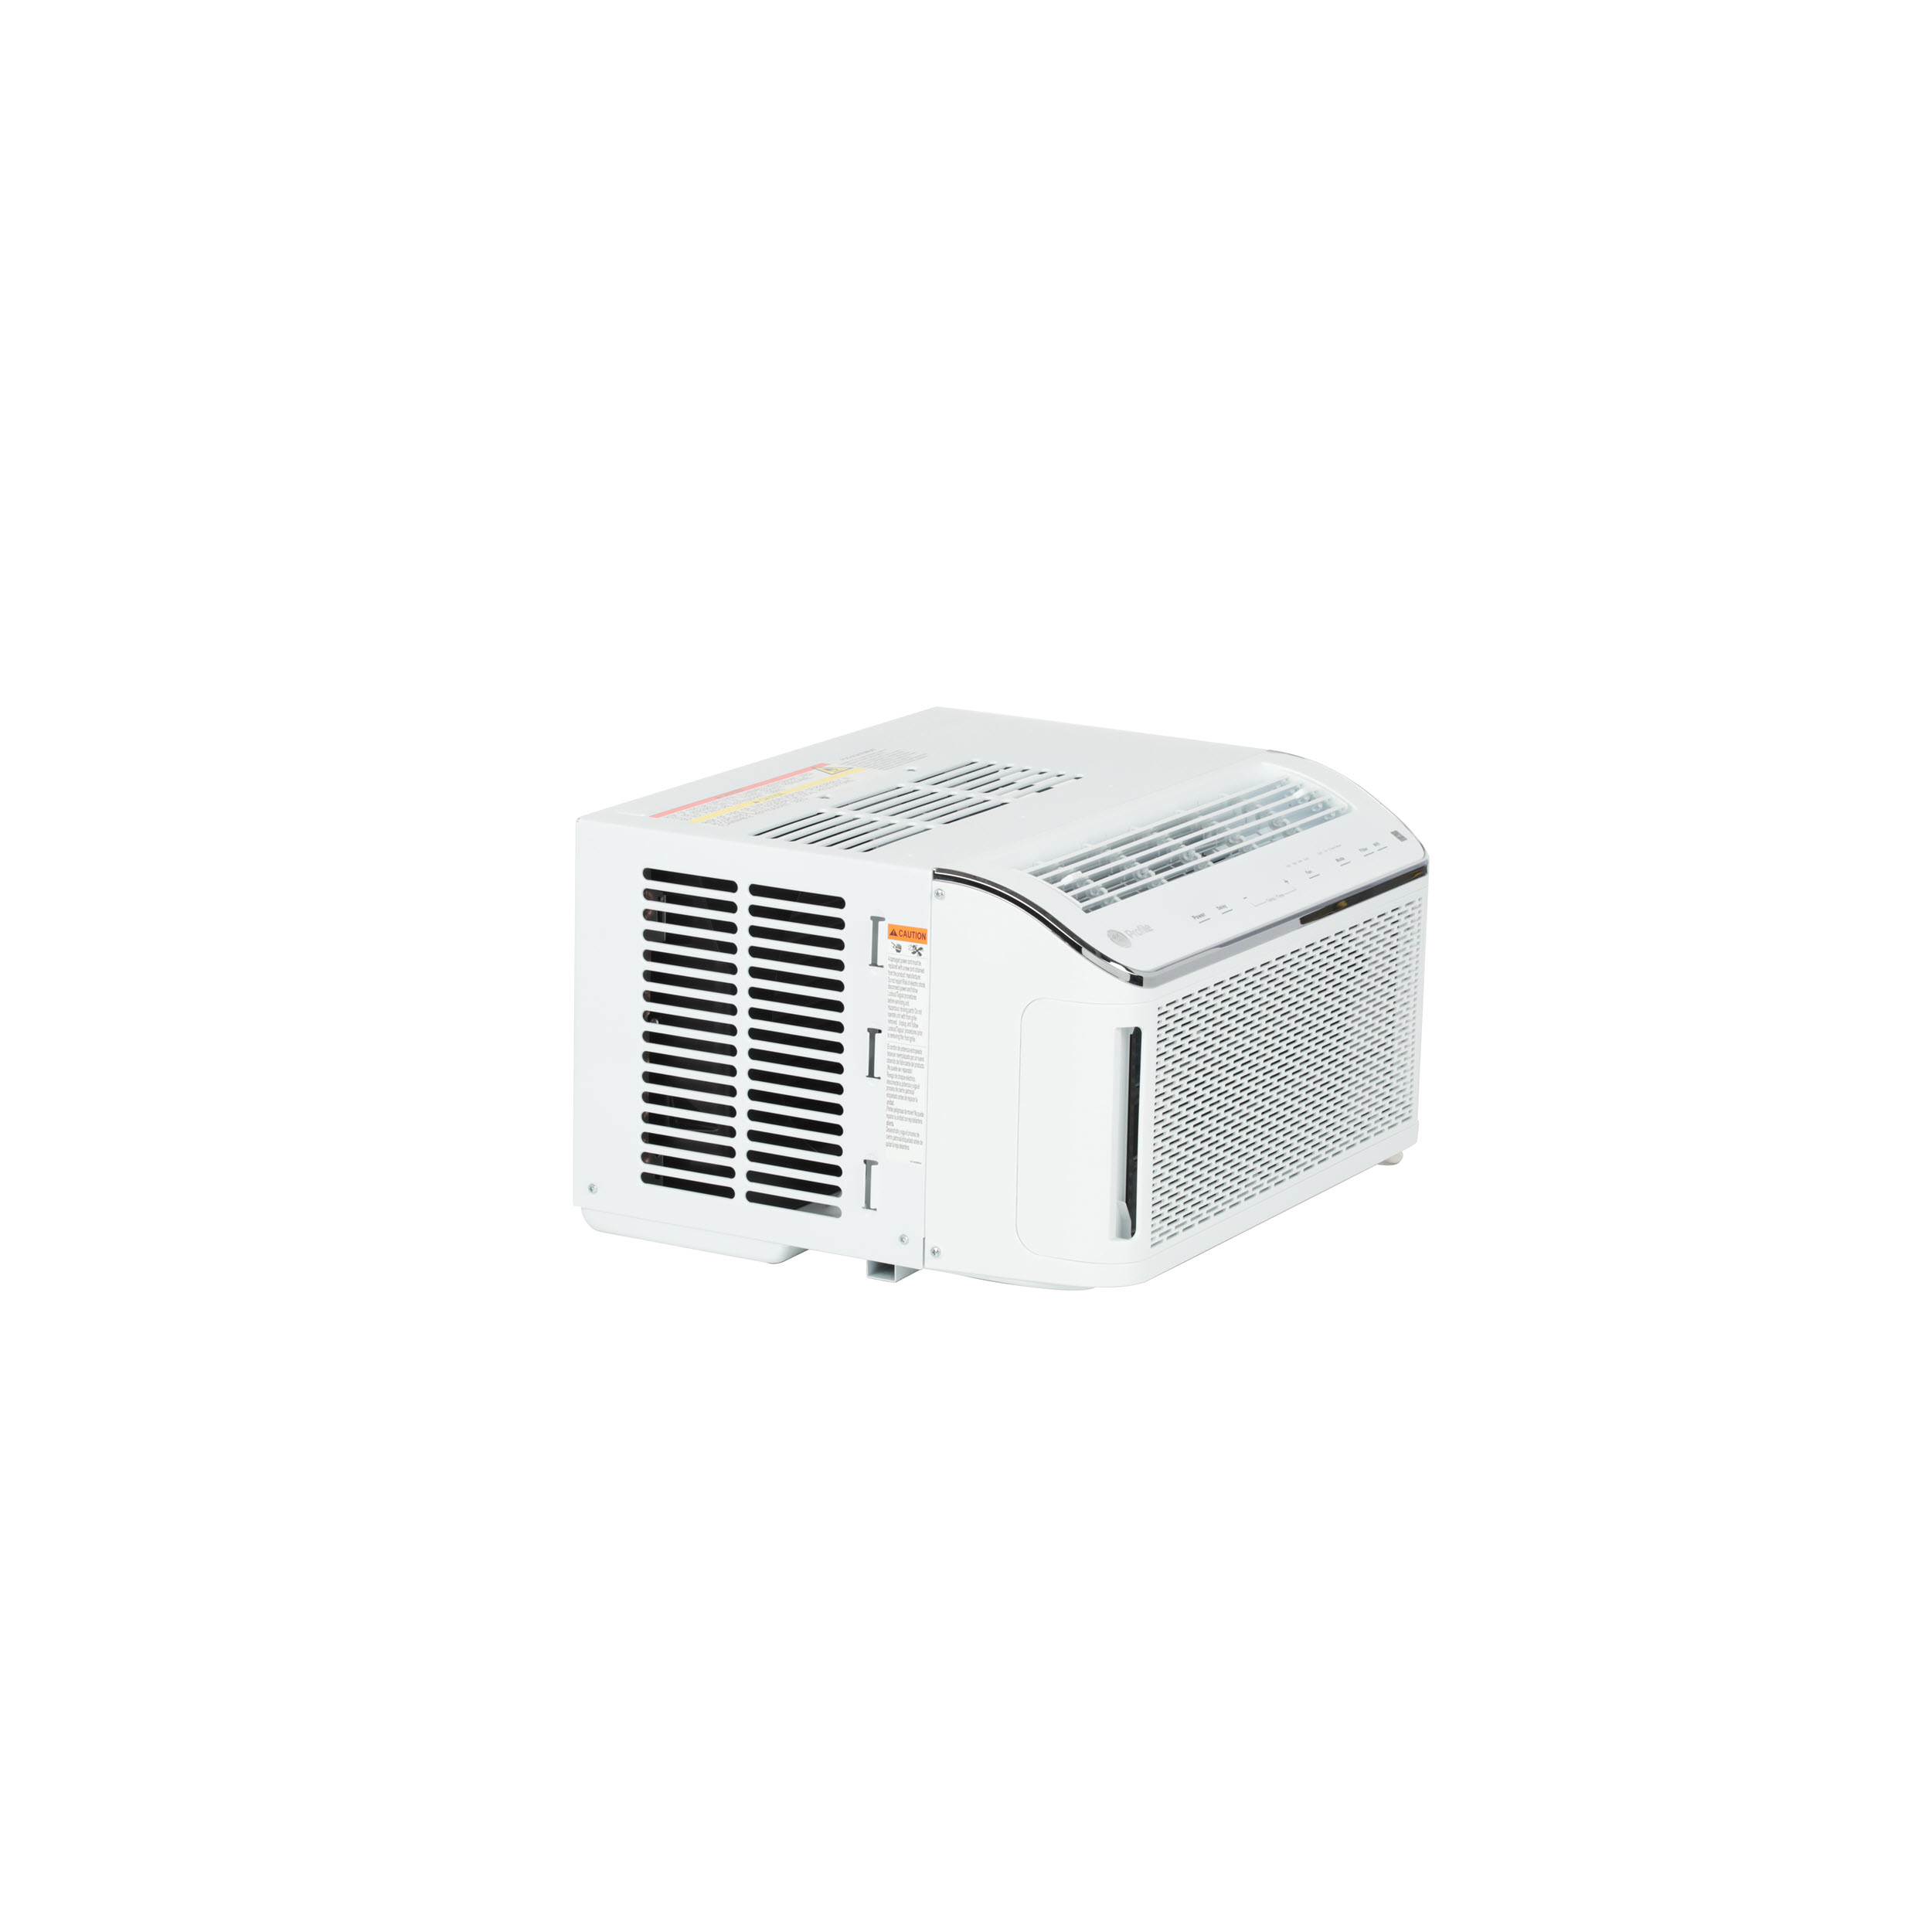 Model: PHC08LY | GE Profile GE Profile™ ENERGY STAR® 115 Volt Room Air Conditioner